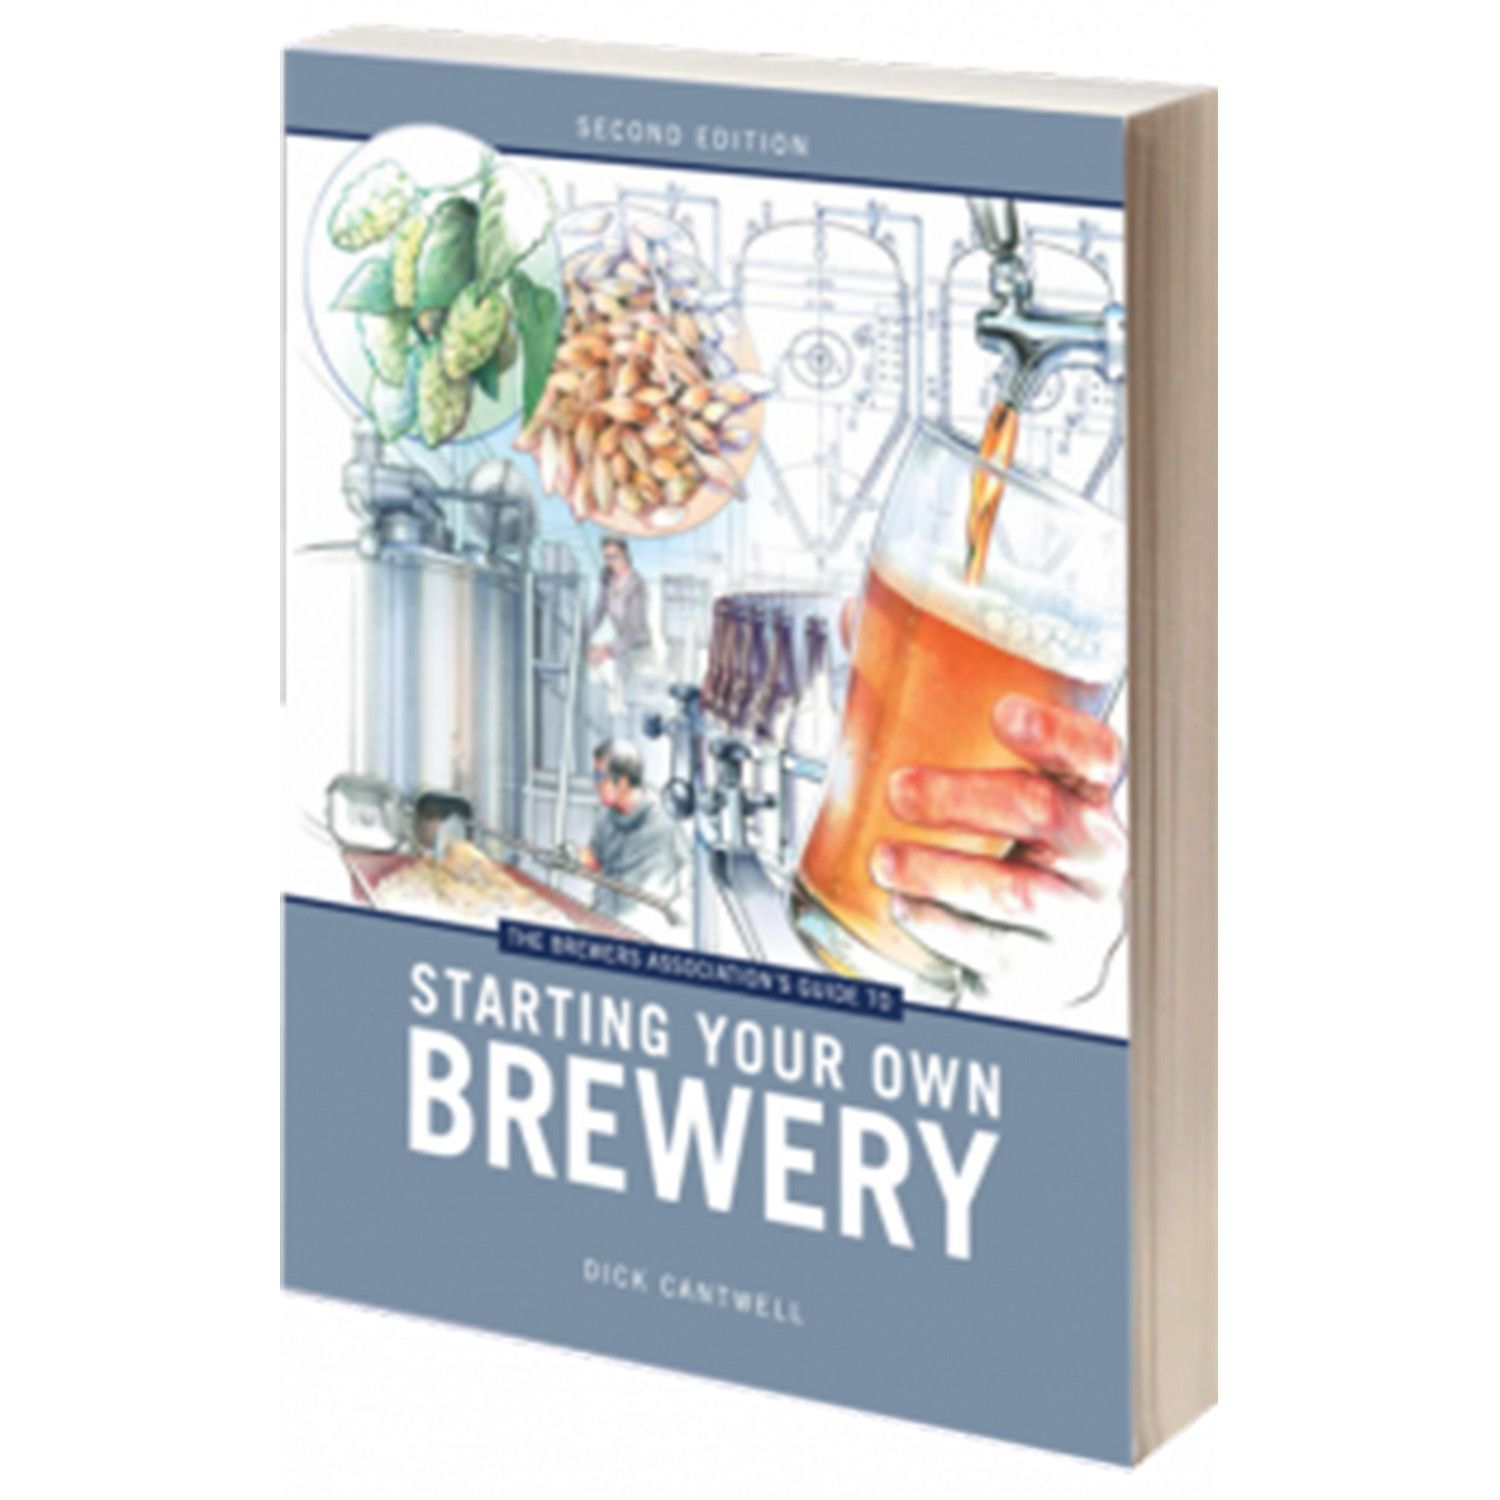 The Brewers Association's Guide to Starting Your Own